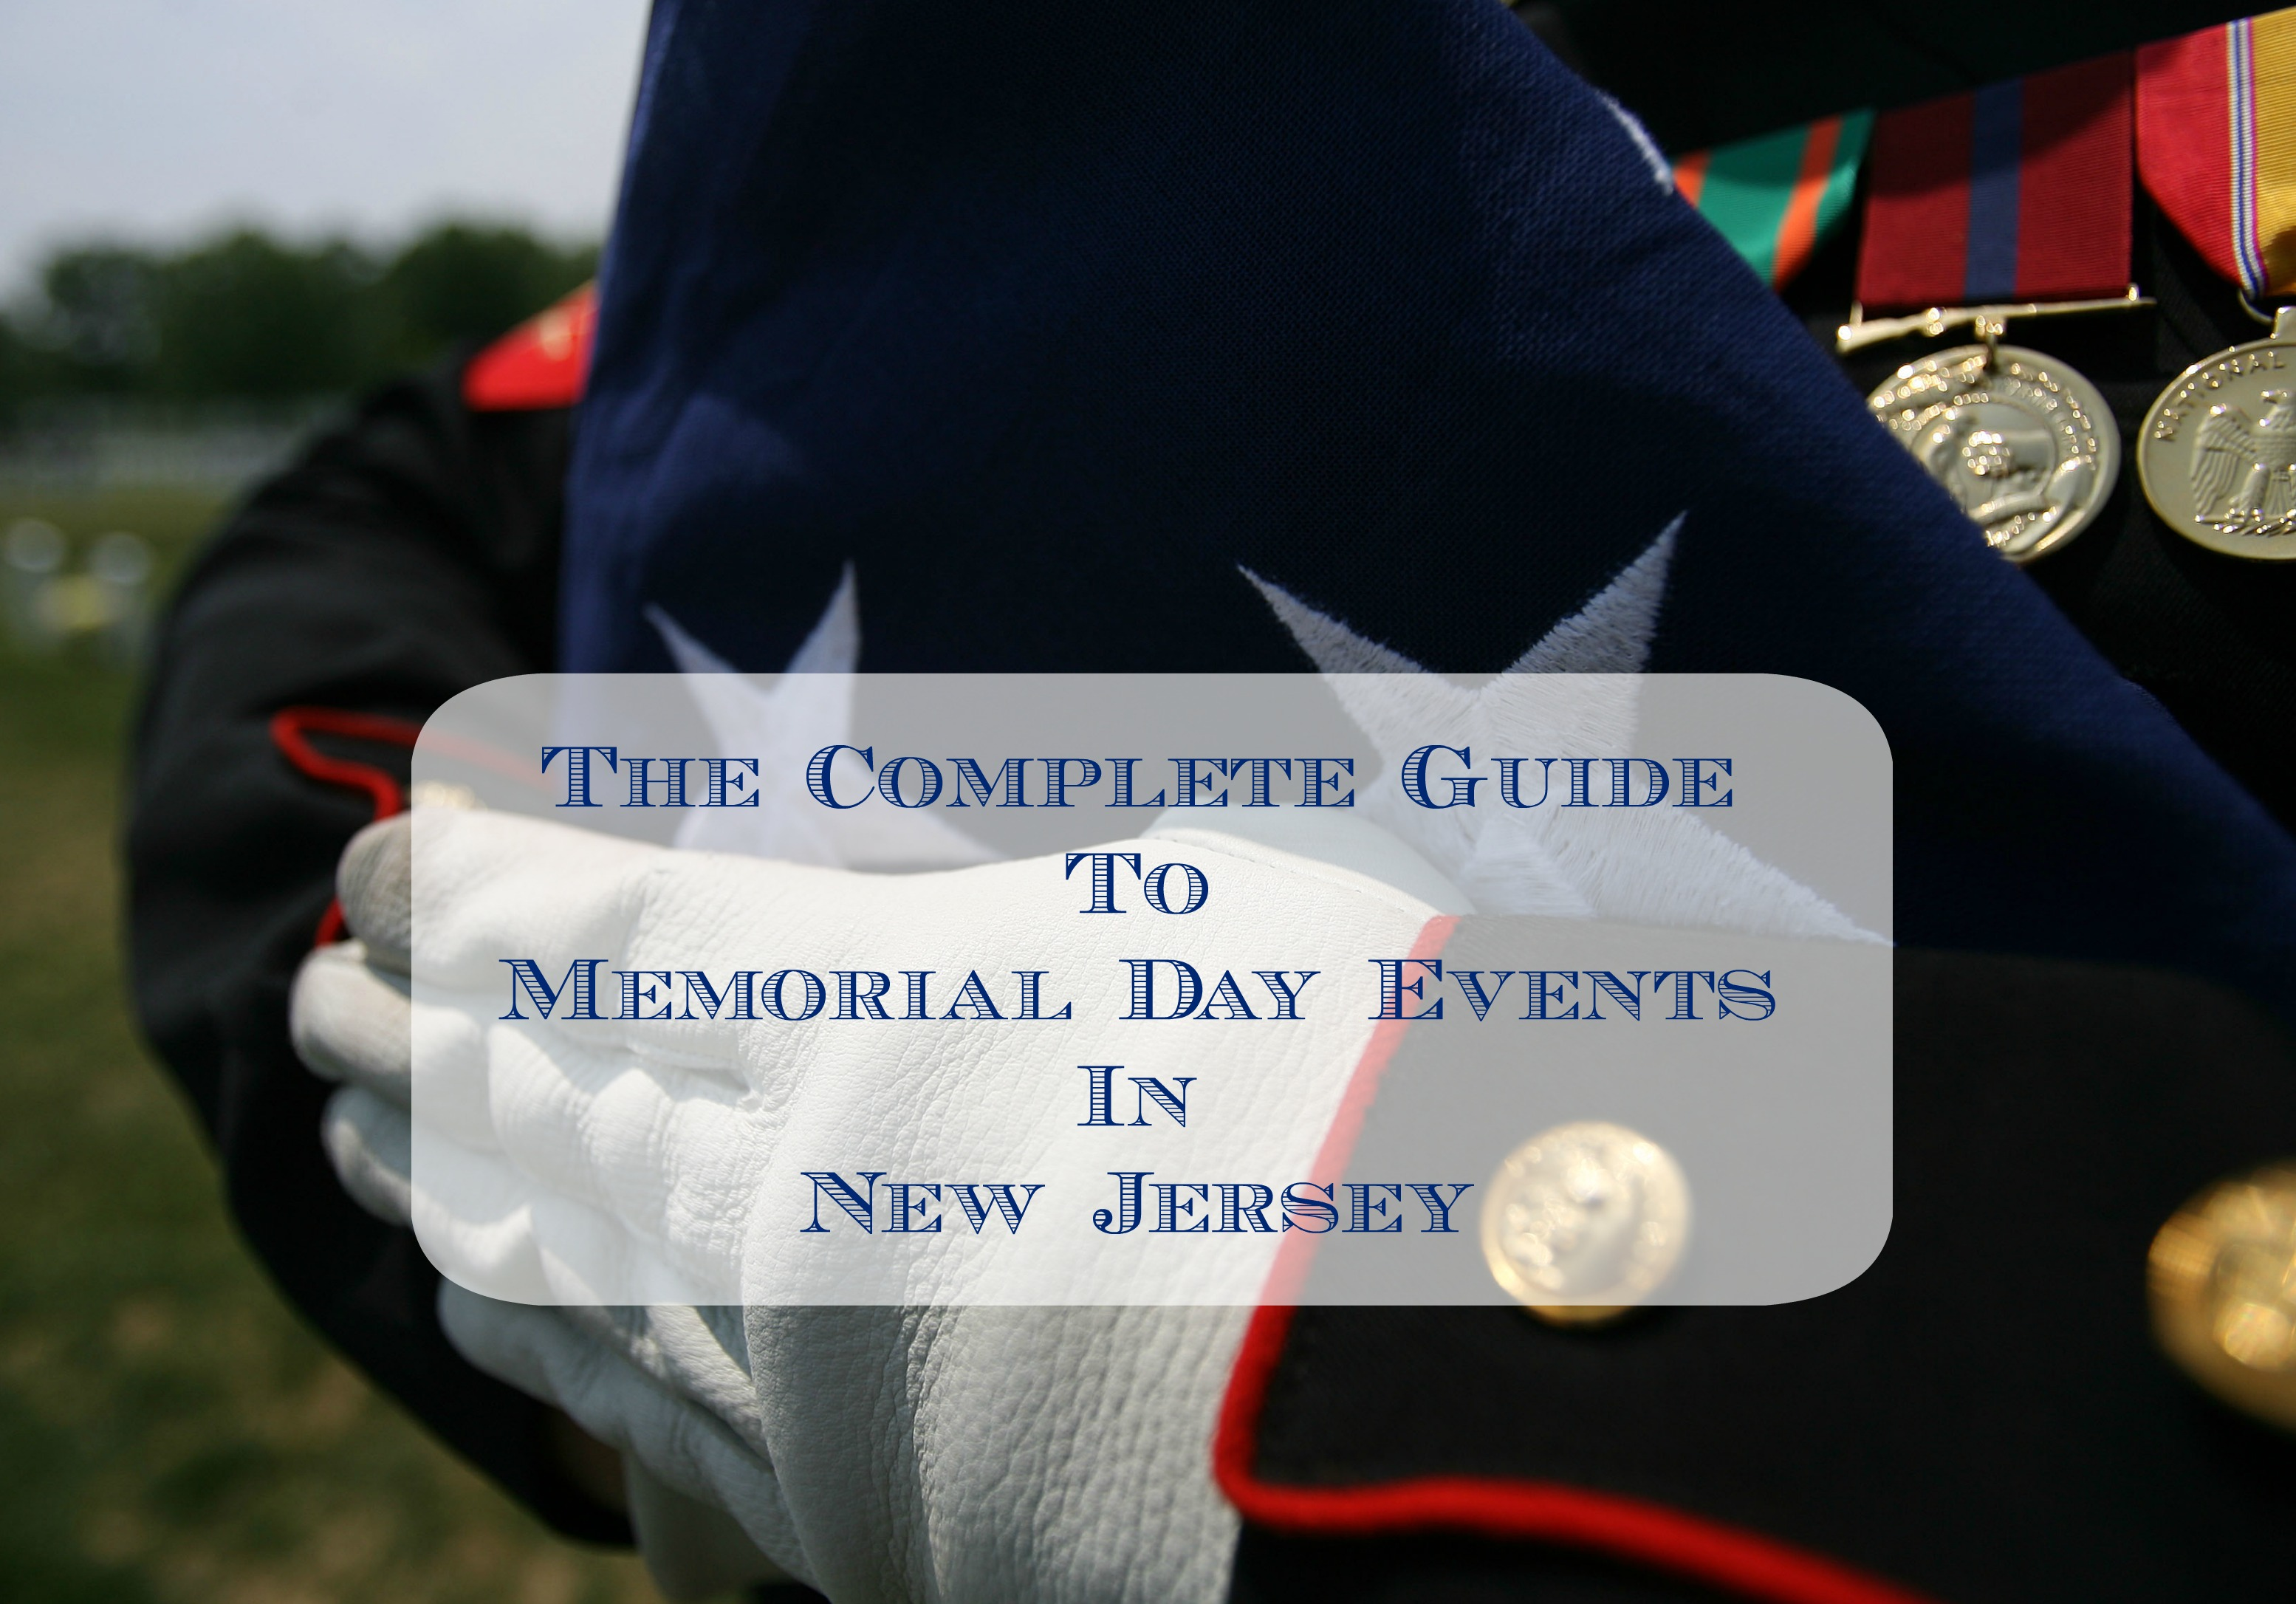 New jersey memorial day blowjob 7